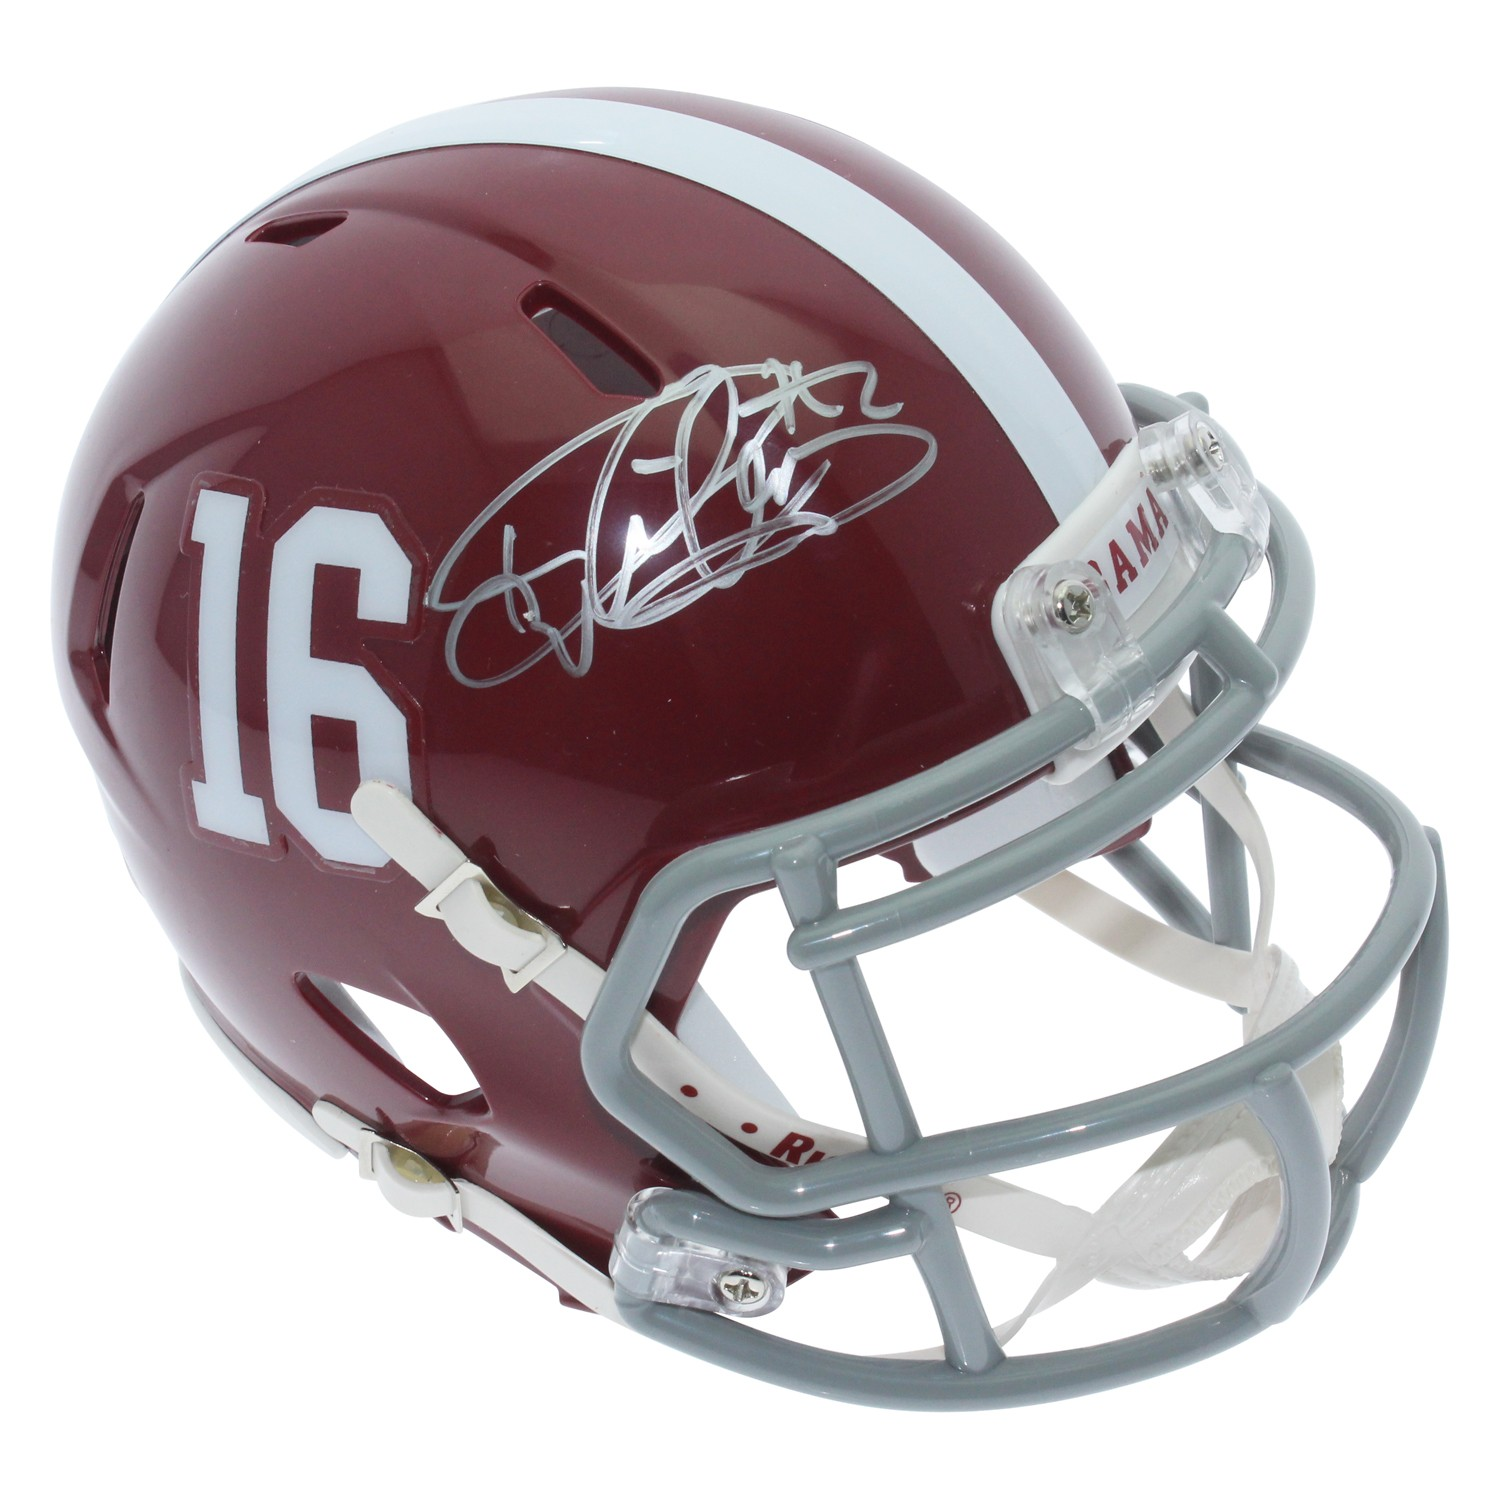 684e7a83a Derrick Henry Autographed Signed Alabama Crimson Tide Riddell Speed Mini  Helmet - PSA DNA Certified Authentic